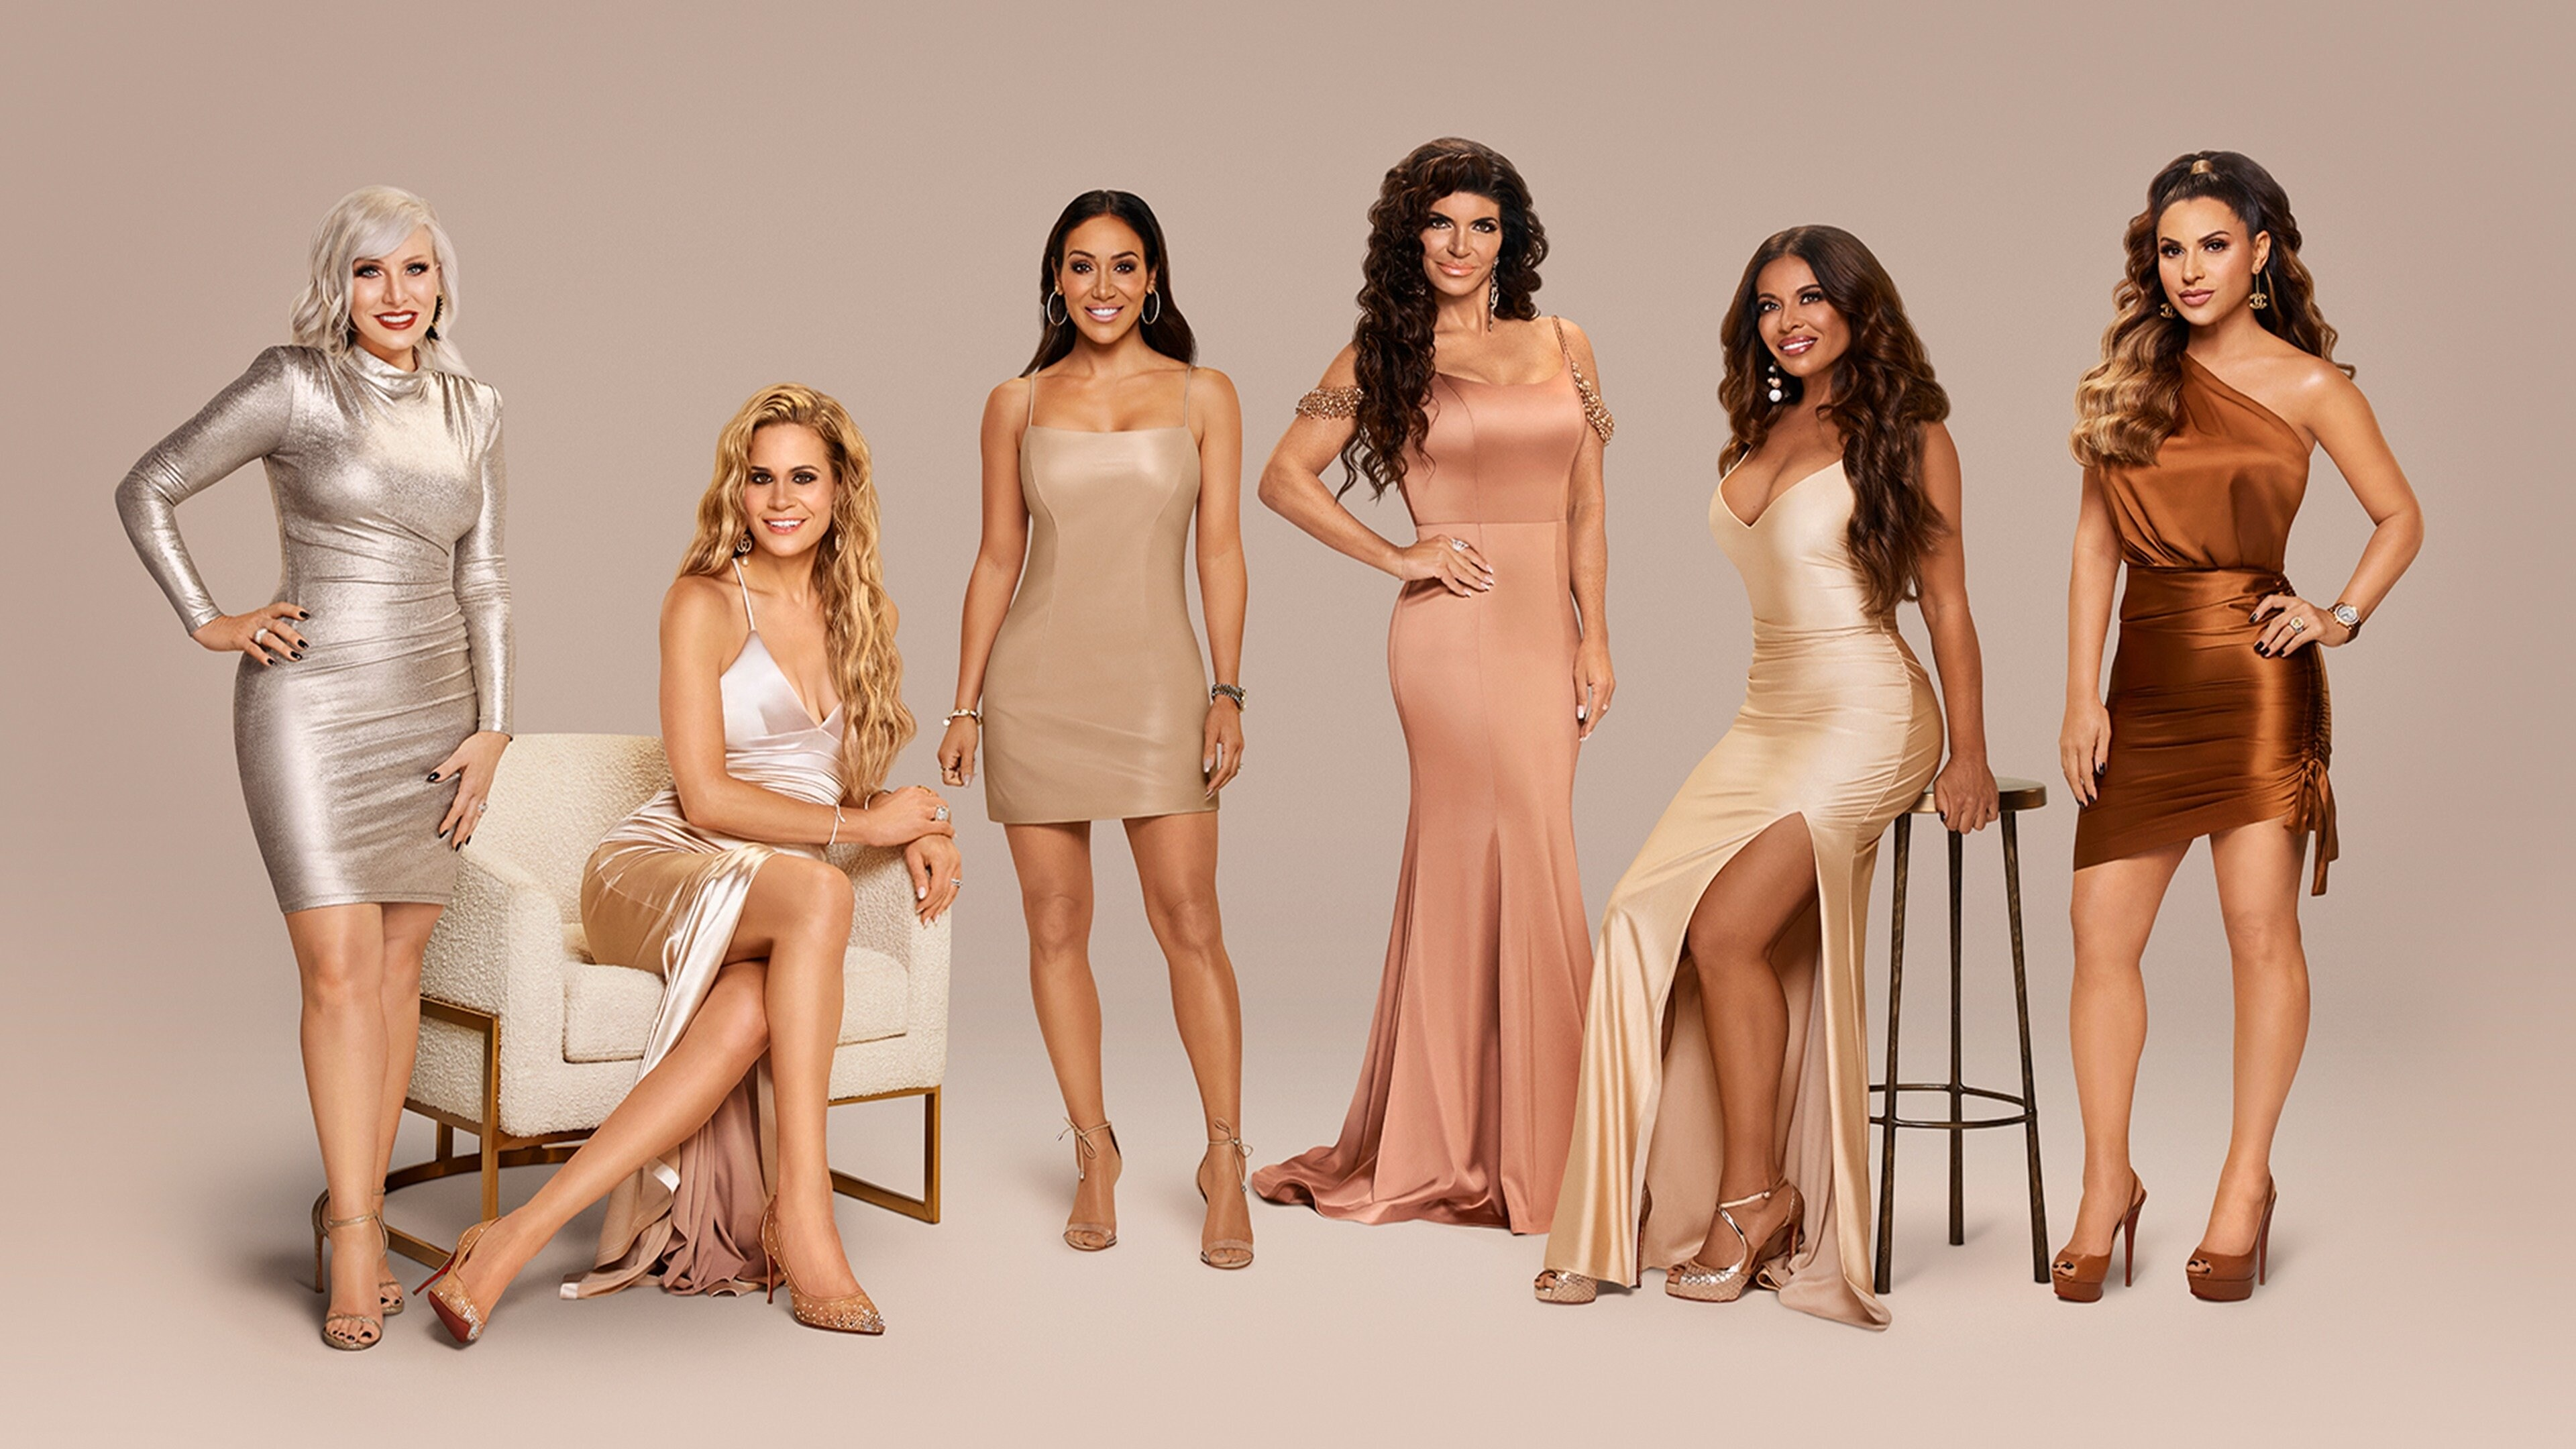 Watch The Real Housewives of New Jersey | Peacock